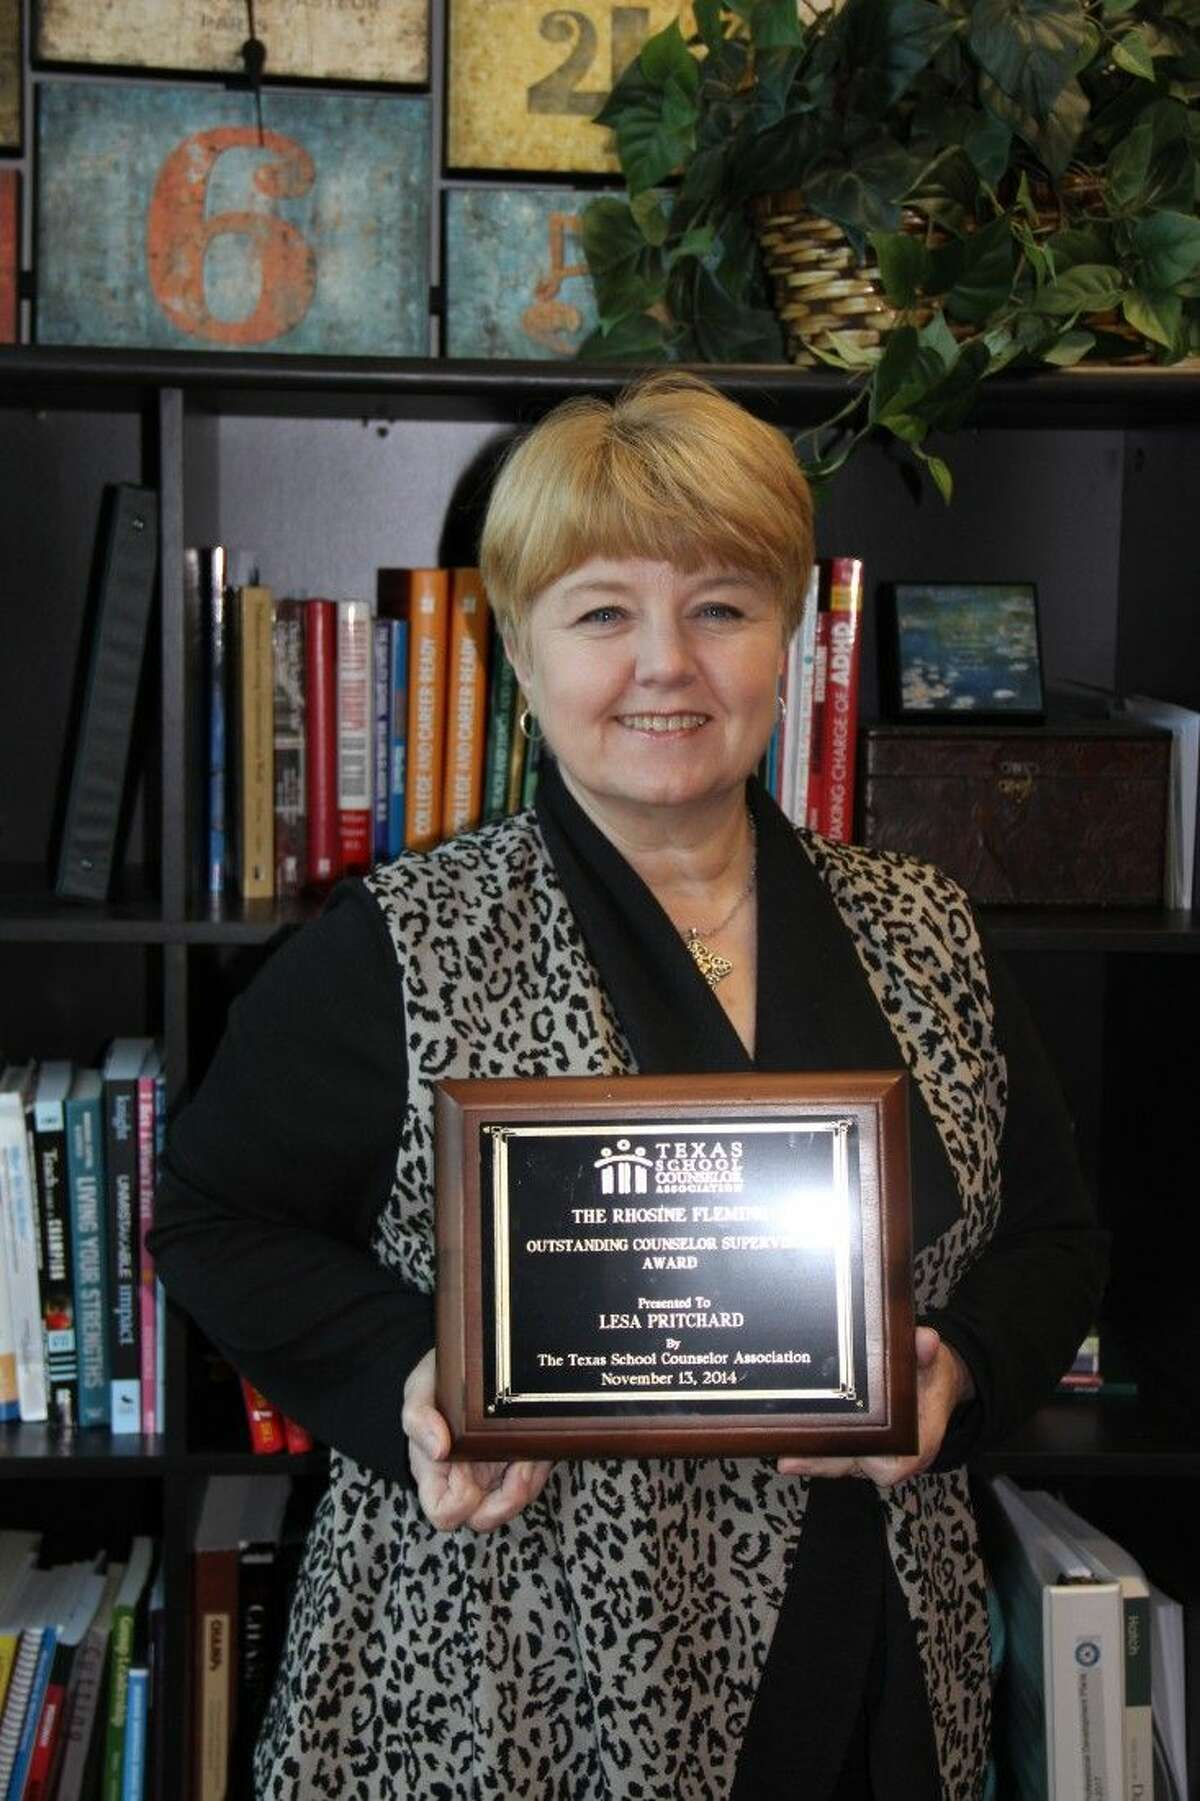 Lesa Pritchard, Humble ISD Director of Student Services receives Supervisor of the Year award by the Texas School Counselor Association.